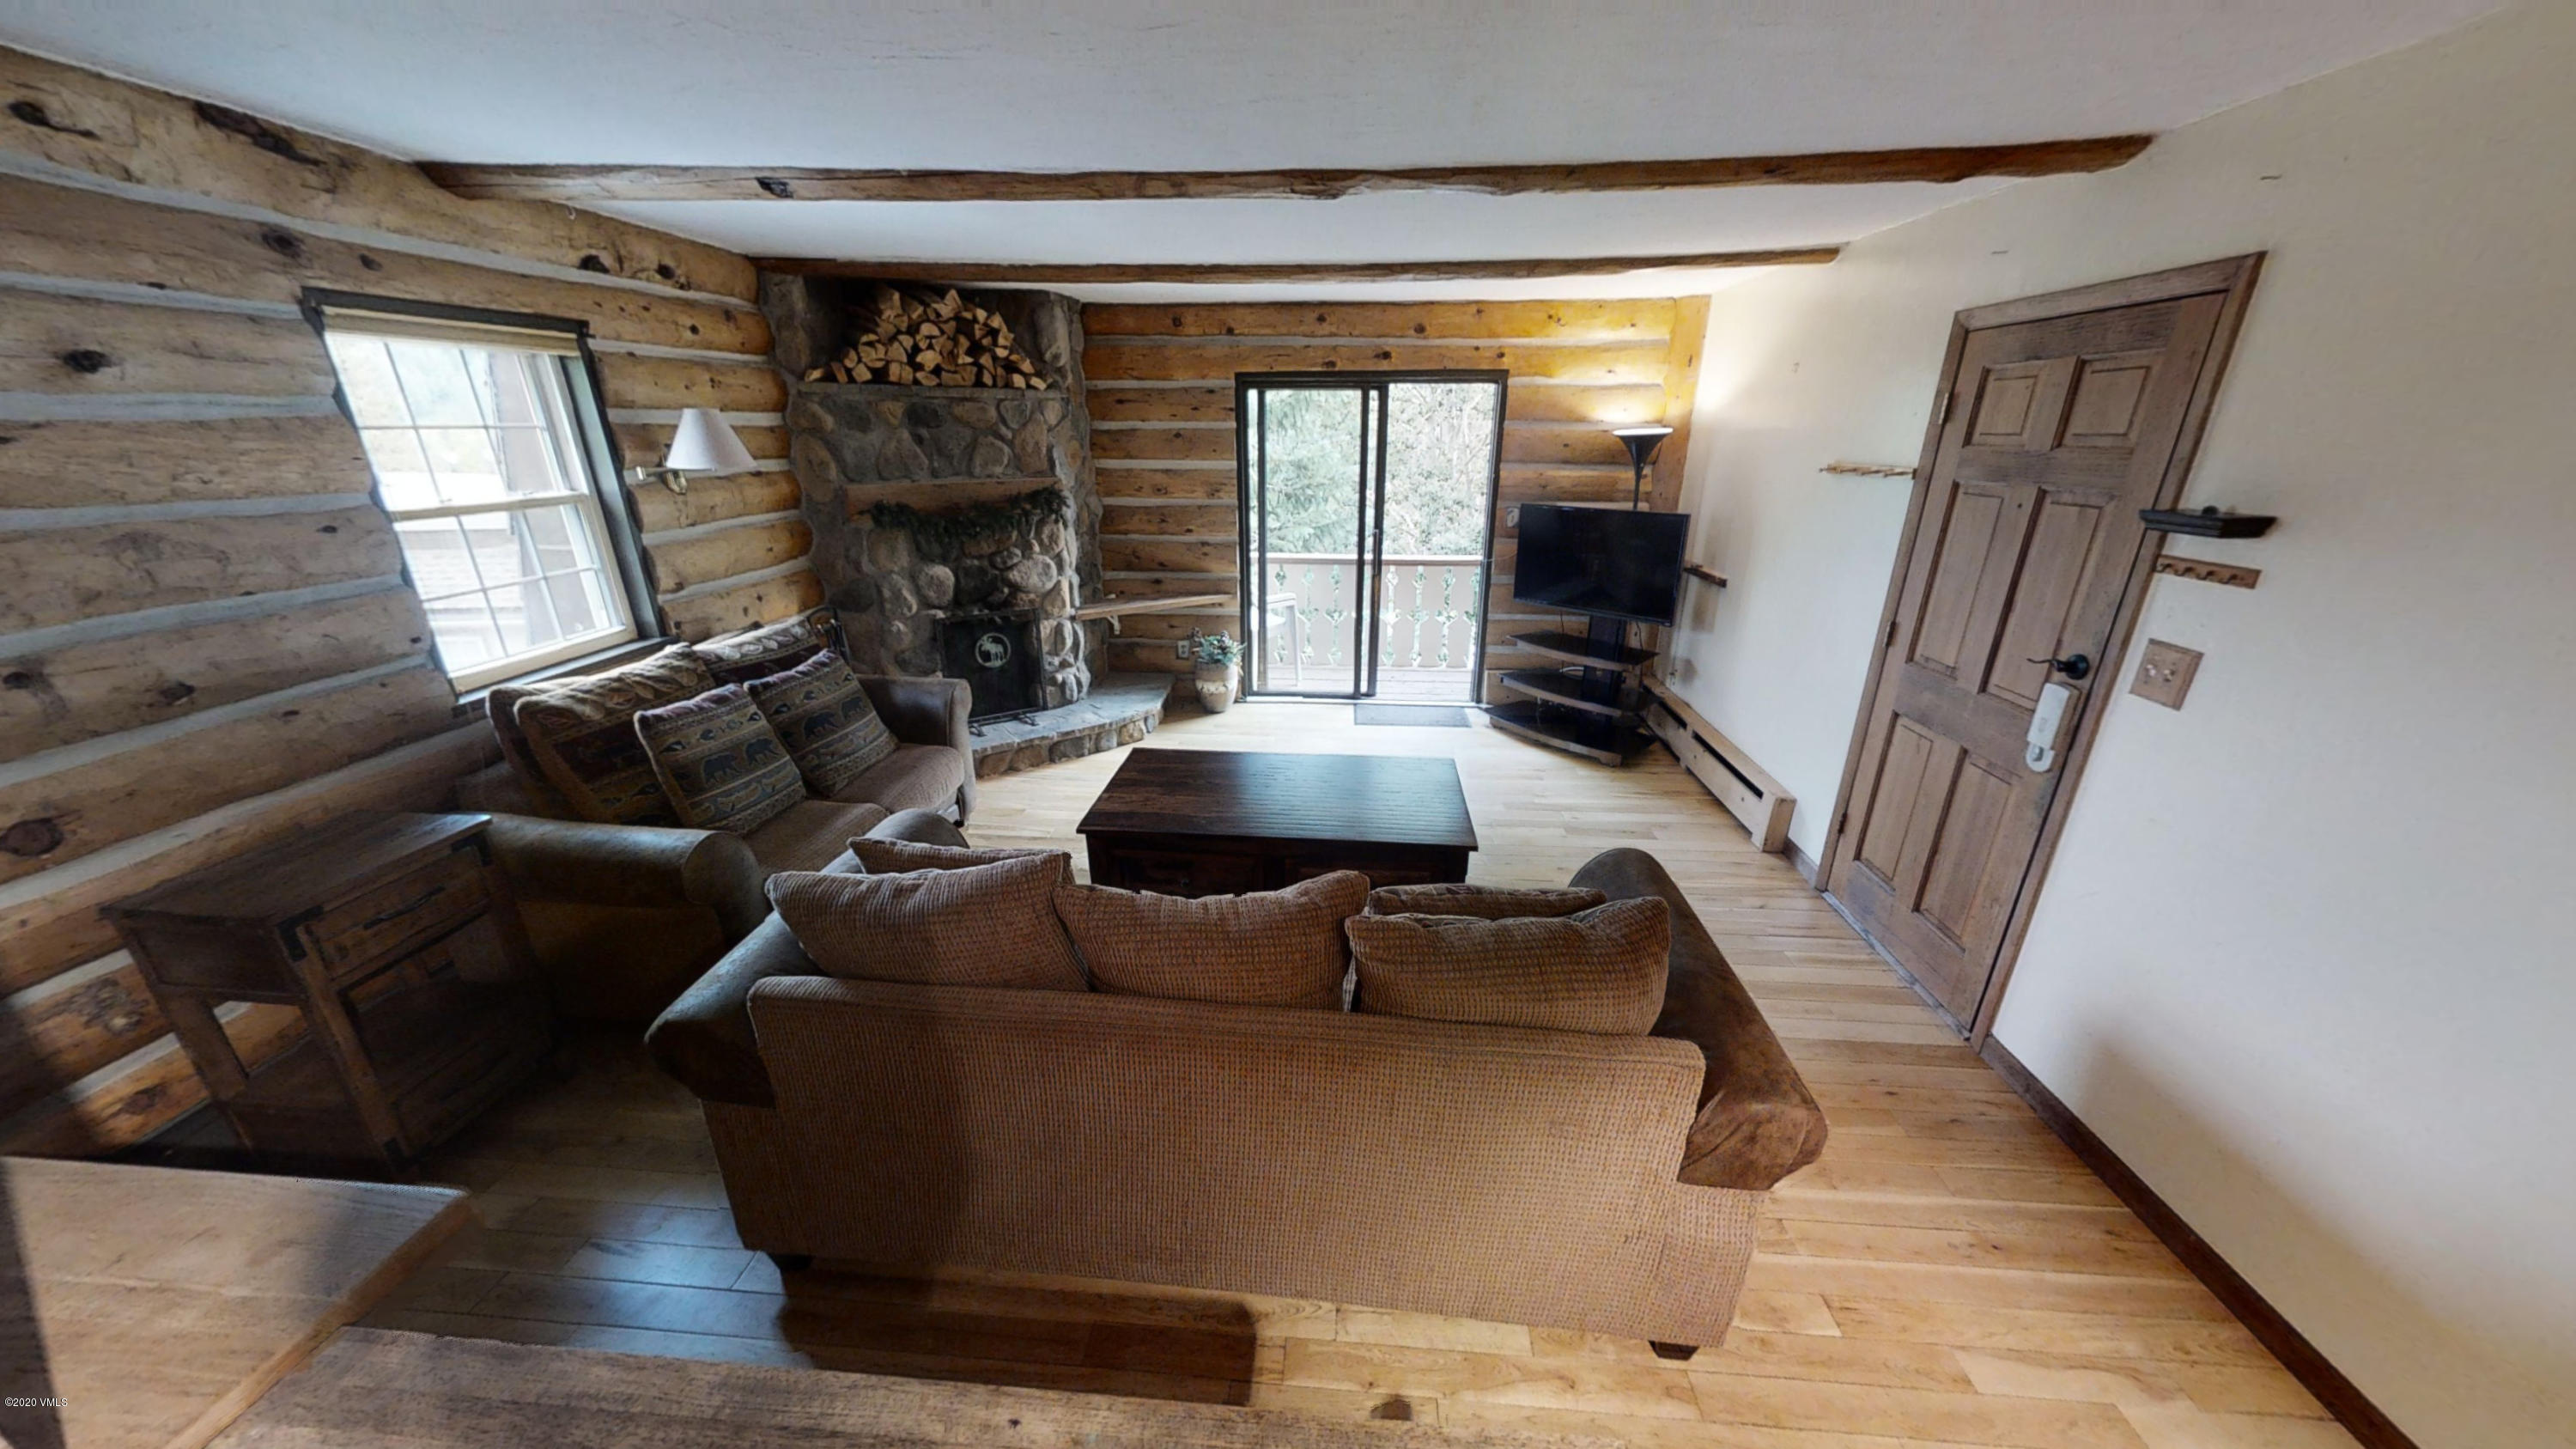 This top floor corner unit. is an East Vail Charmer, ready to move in. This is the perfect full time residence or mountain getaway. With two dedicated parking spaces steps from the entrance, don't miss out on this opportunity.